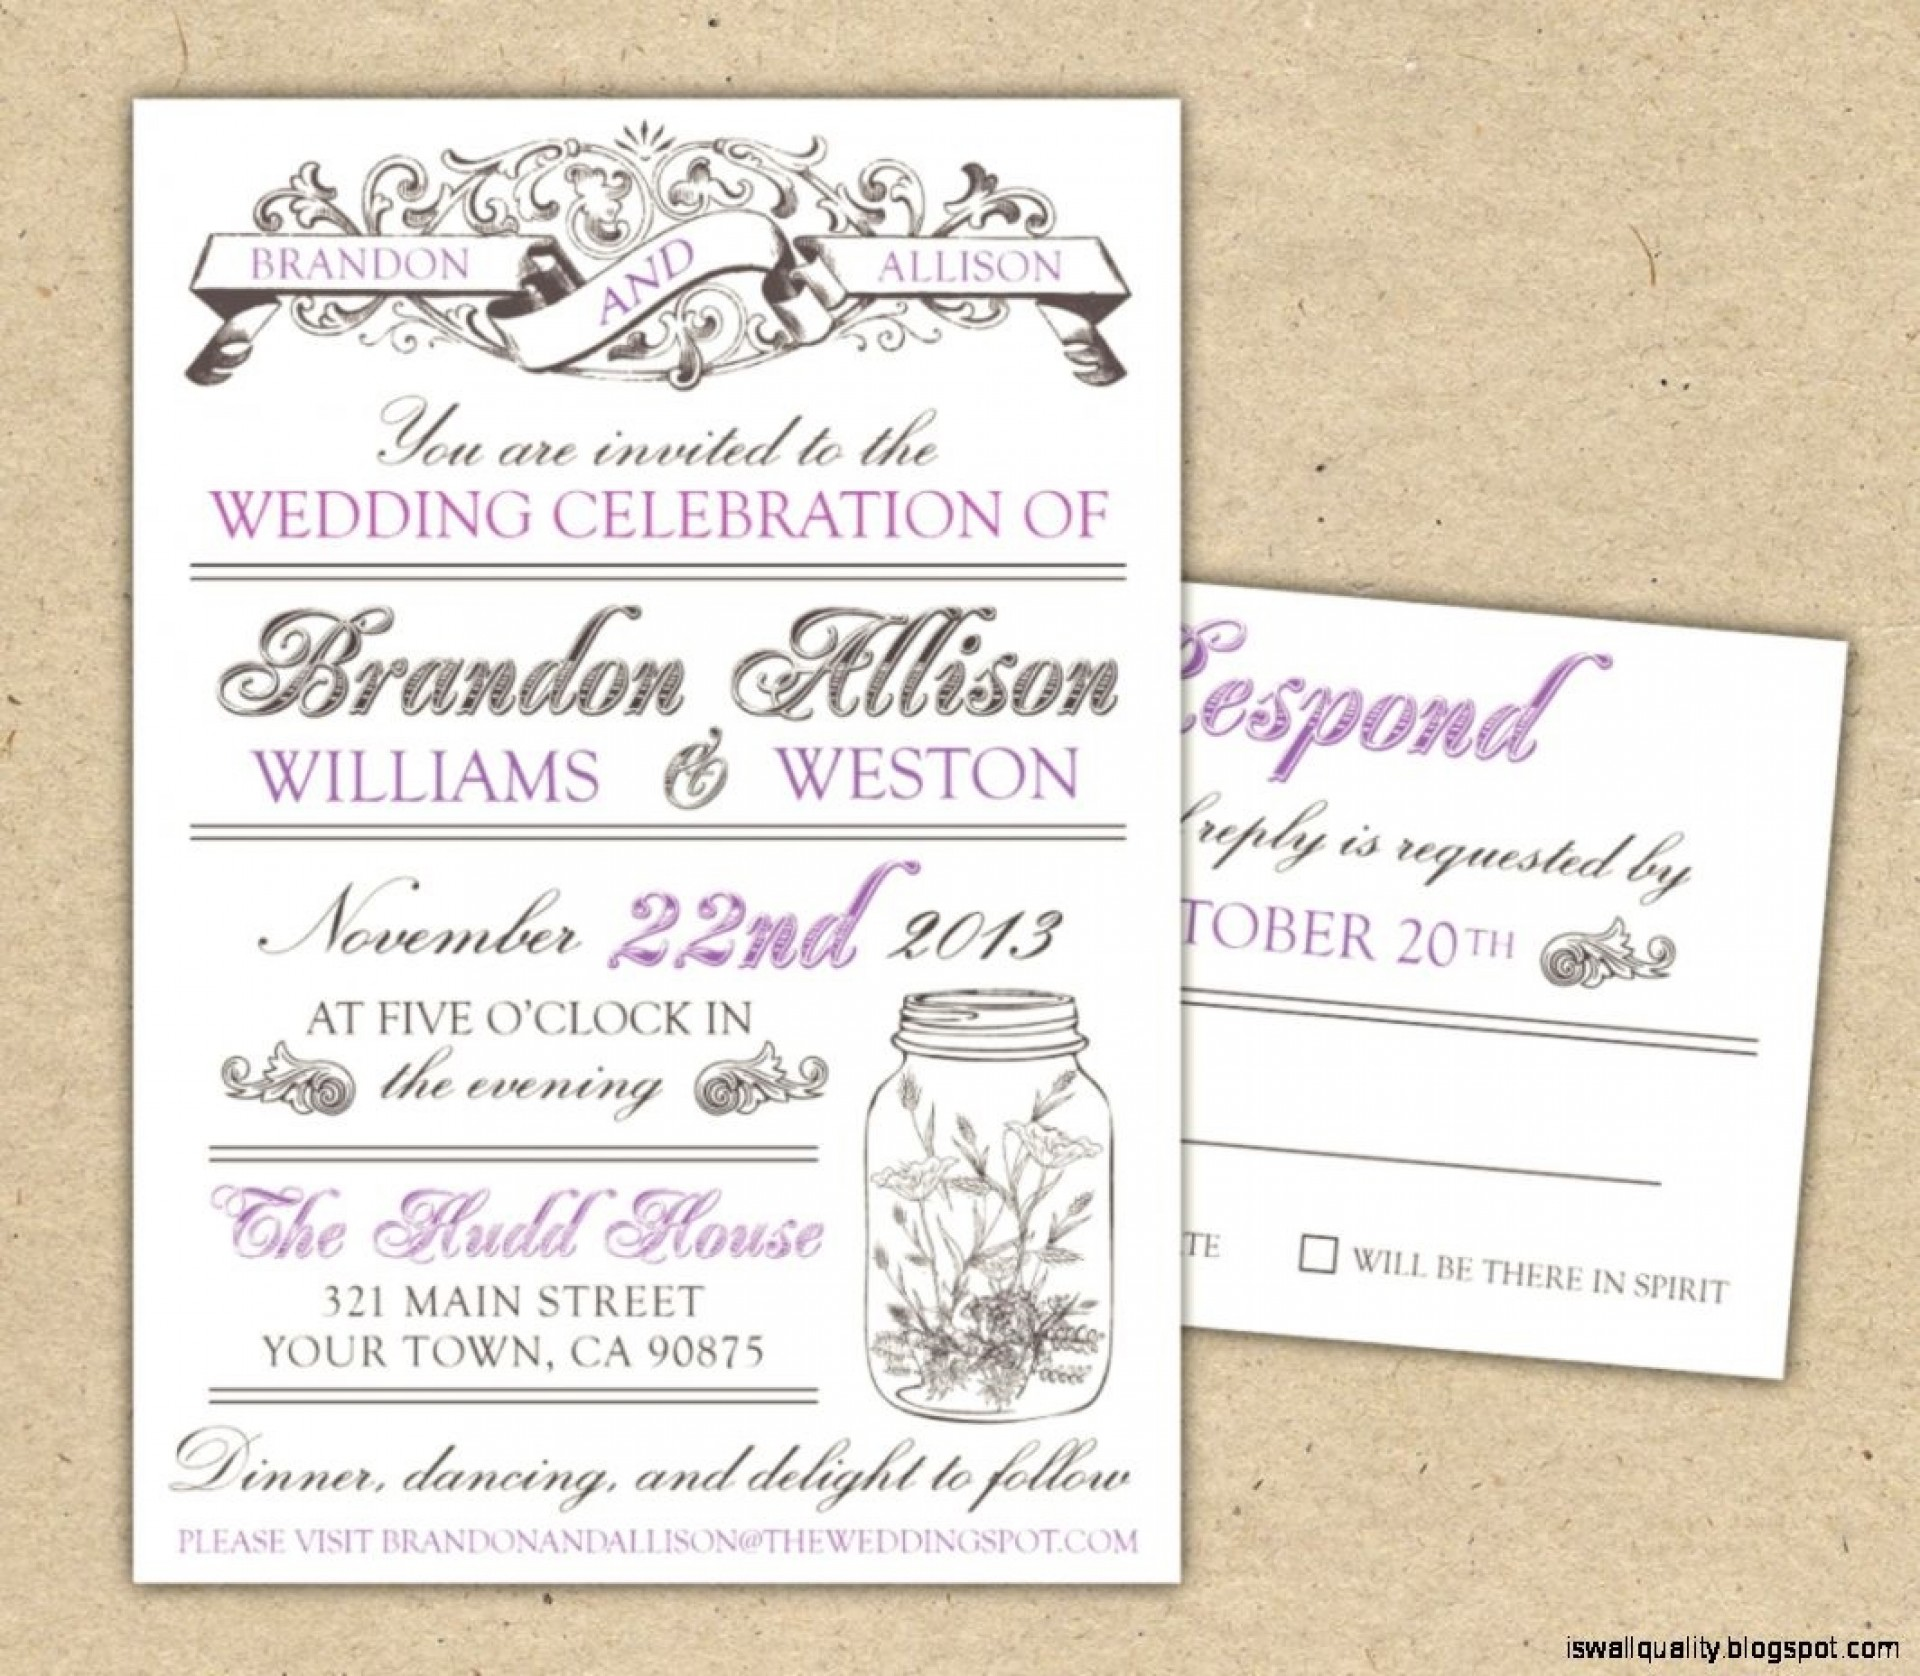 009 Awesome Wedding Invitation Template Free Example  Card Psd For Word Muslim 20071920